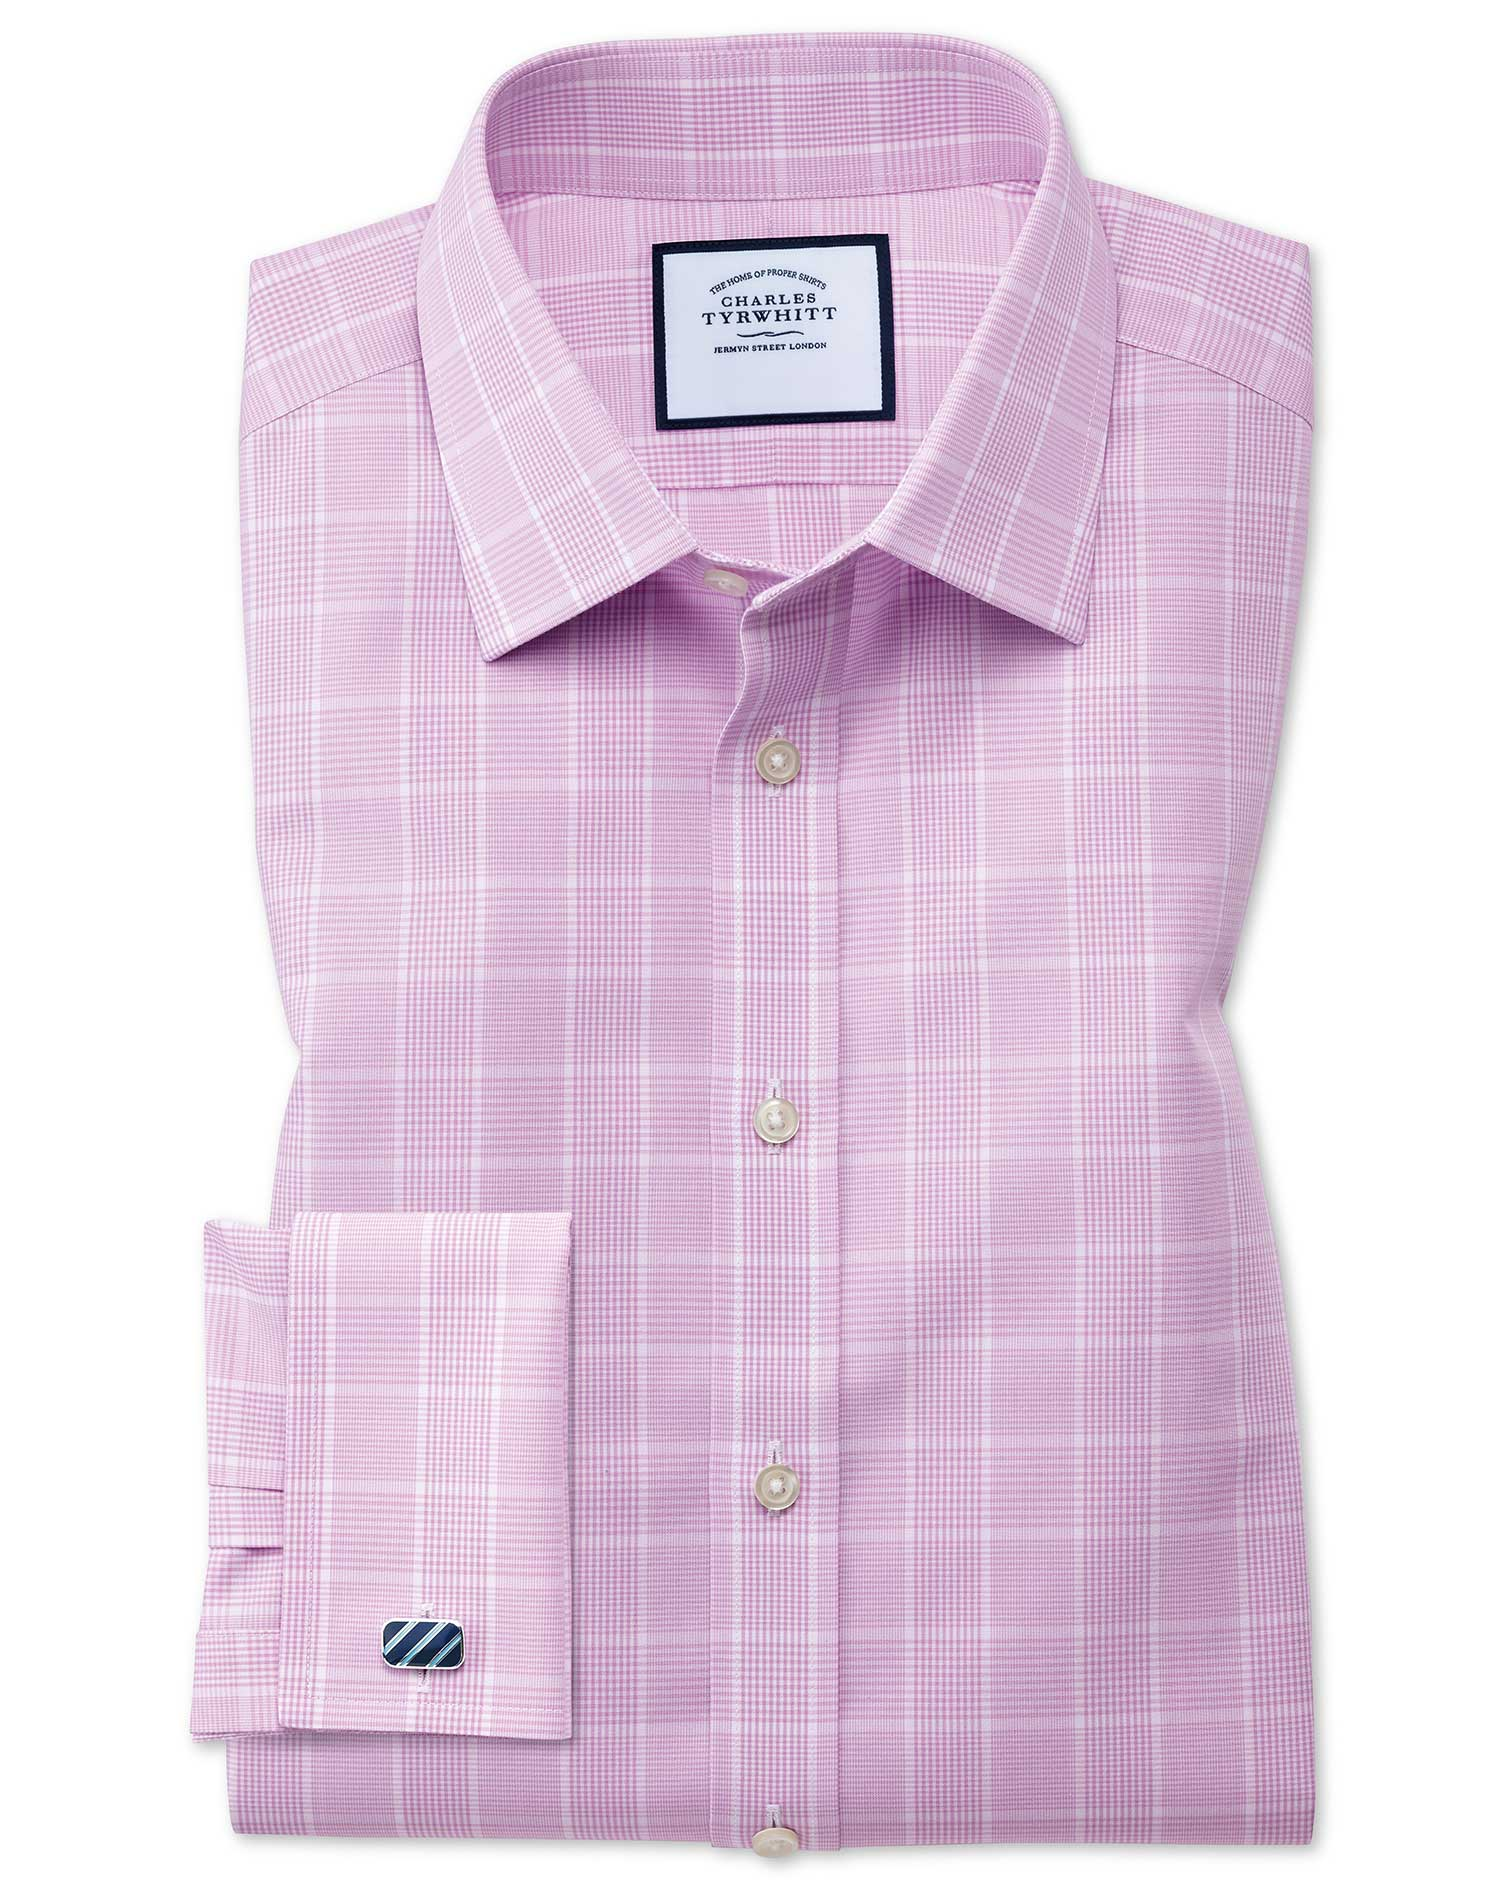 Classic Fit Non-Iron Prince Of Wales Pink Cotton Formal Shirt Single Cuff Size 16/35 by Charles Tyrw